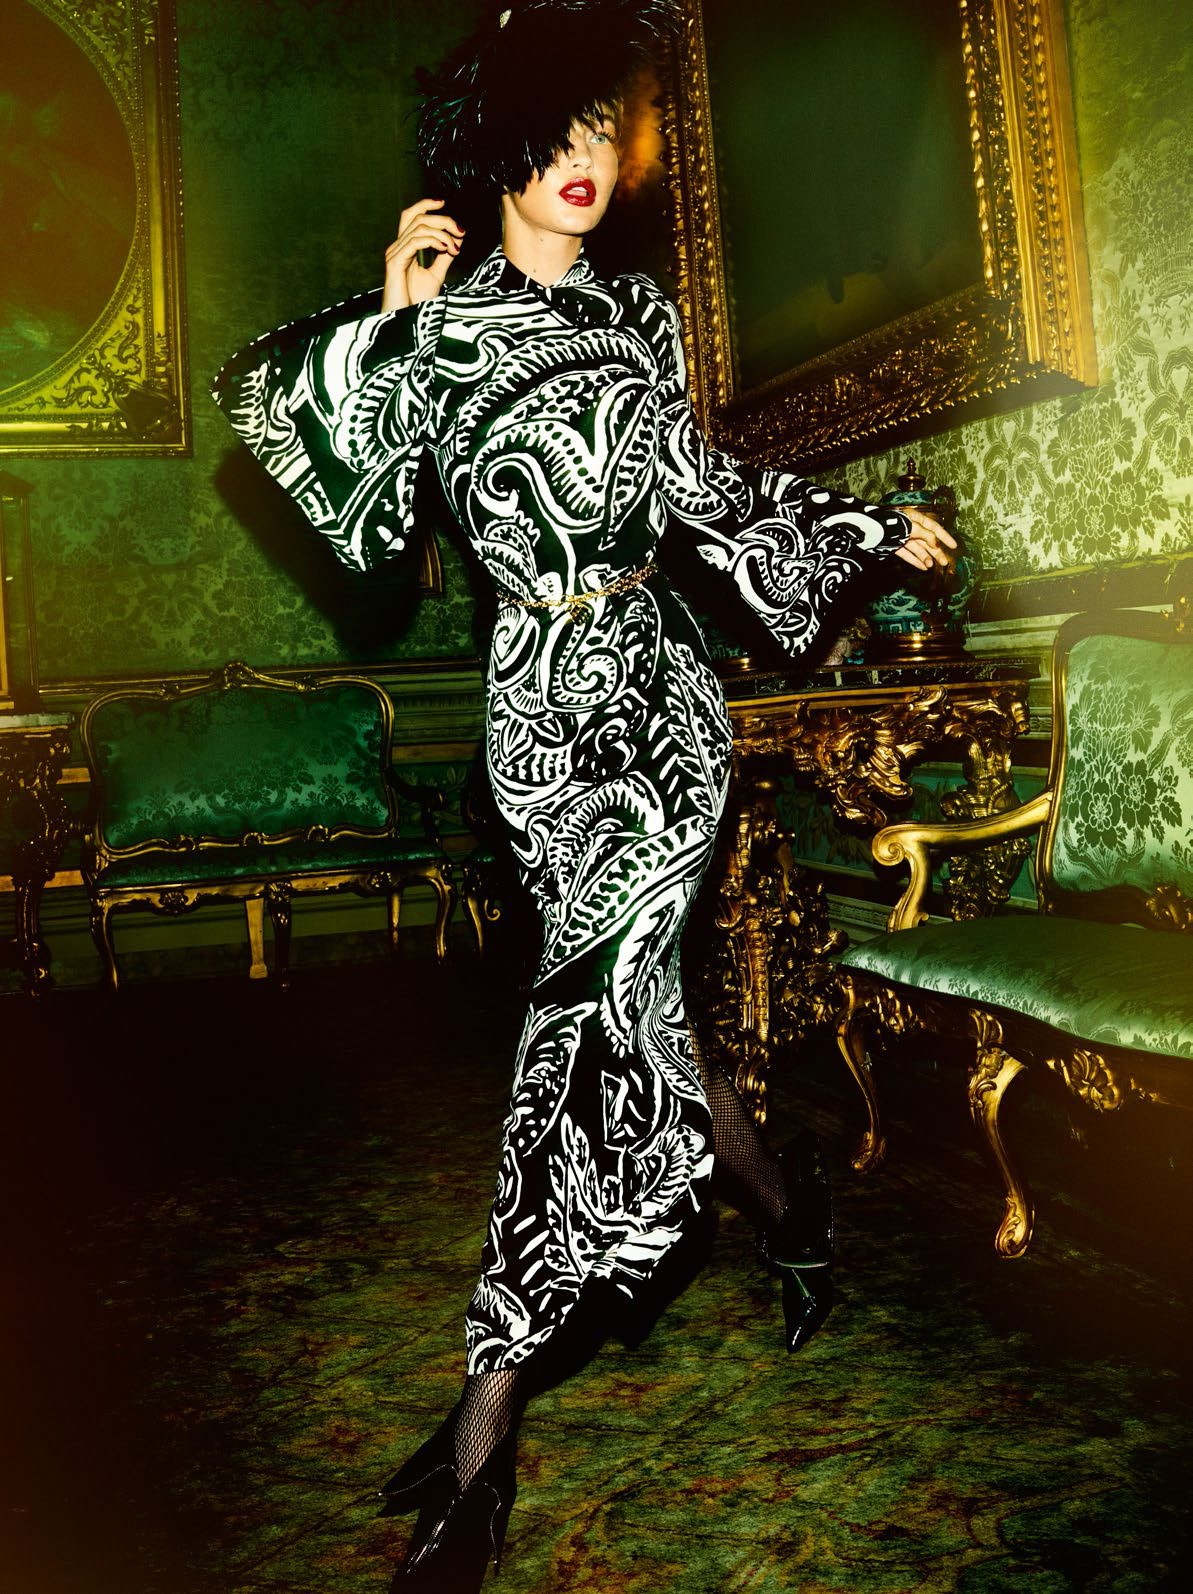 Gigi-Hadid-by-Mario-Testino-for-Vogue-Paris-November-2016